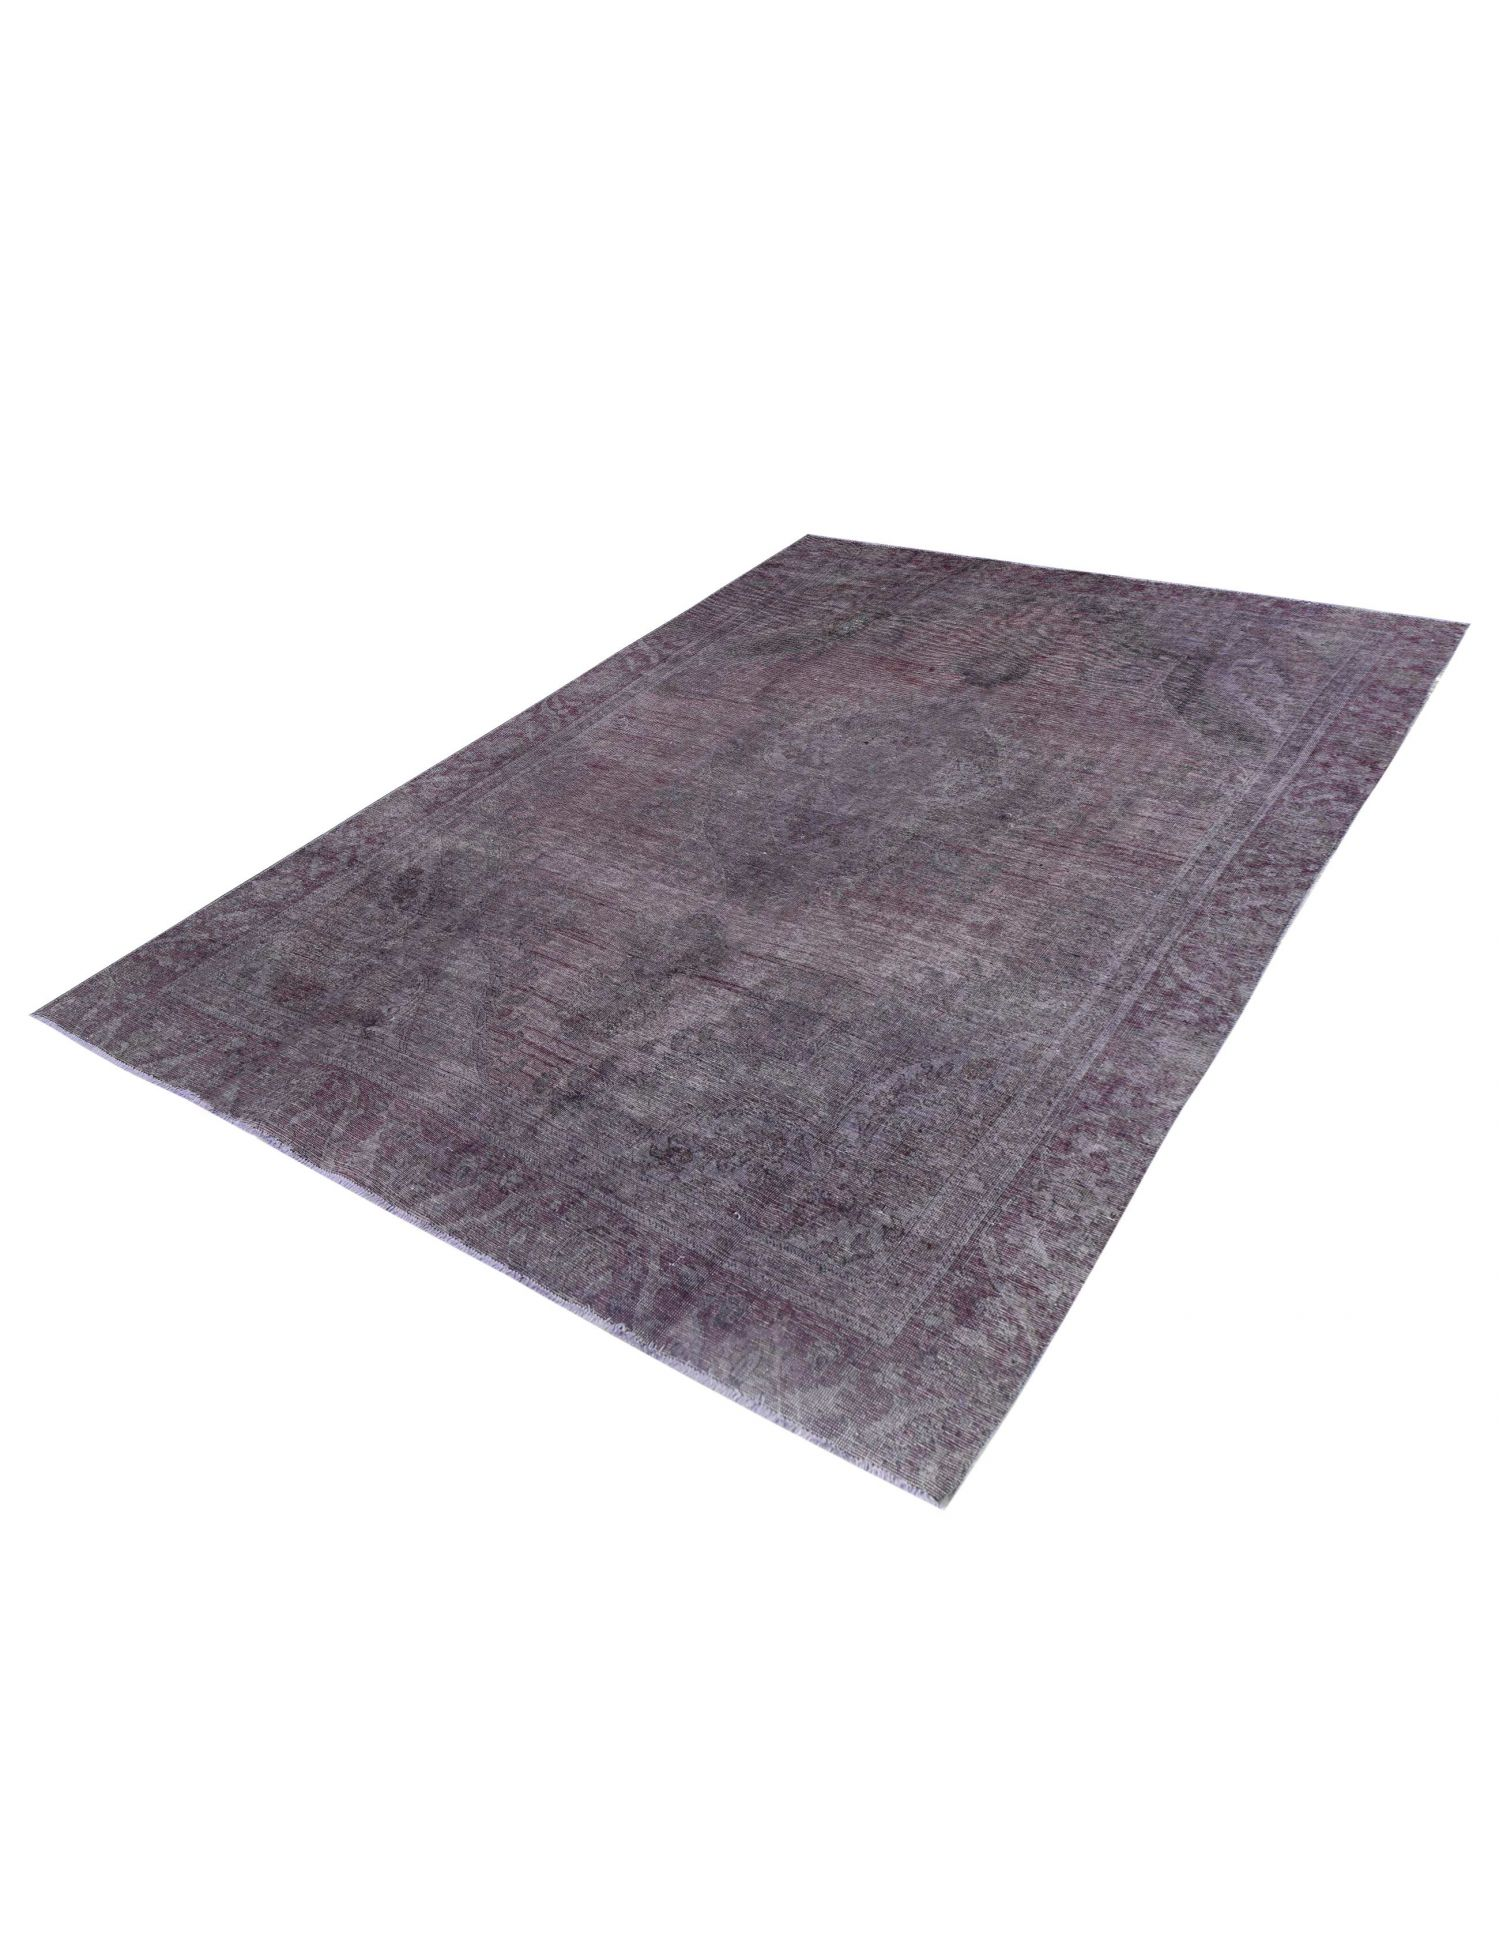 Vintage Carpet  purple <br/>315 x 259 cm